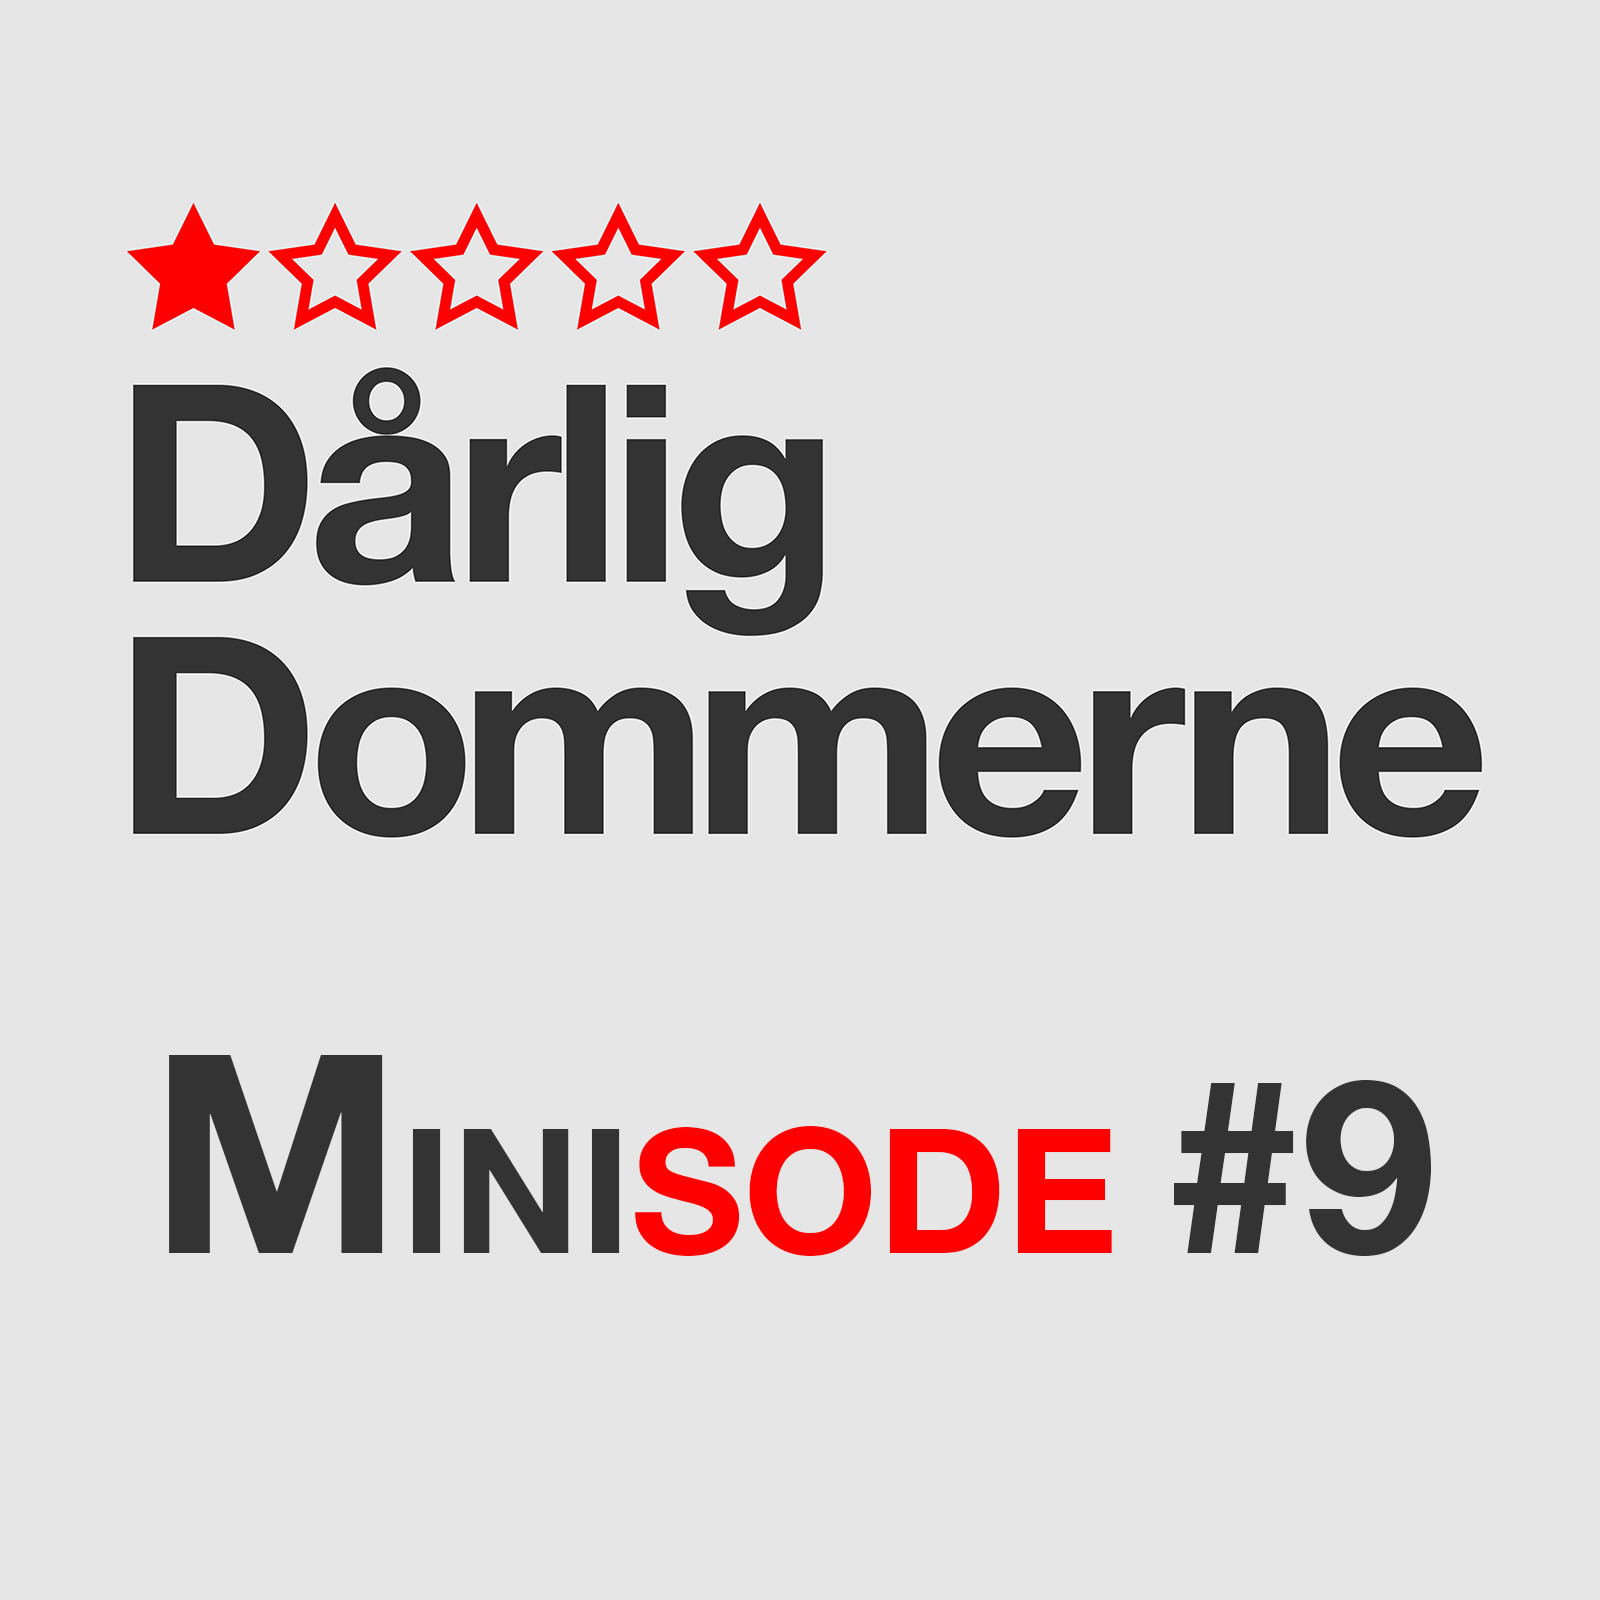 Artwork for Dårligdommerne Minisode 9